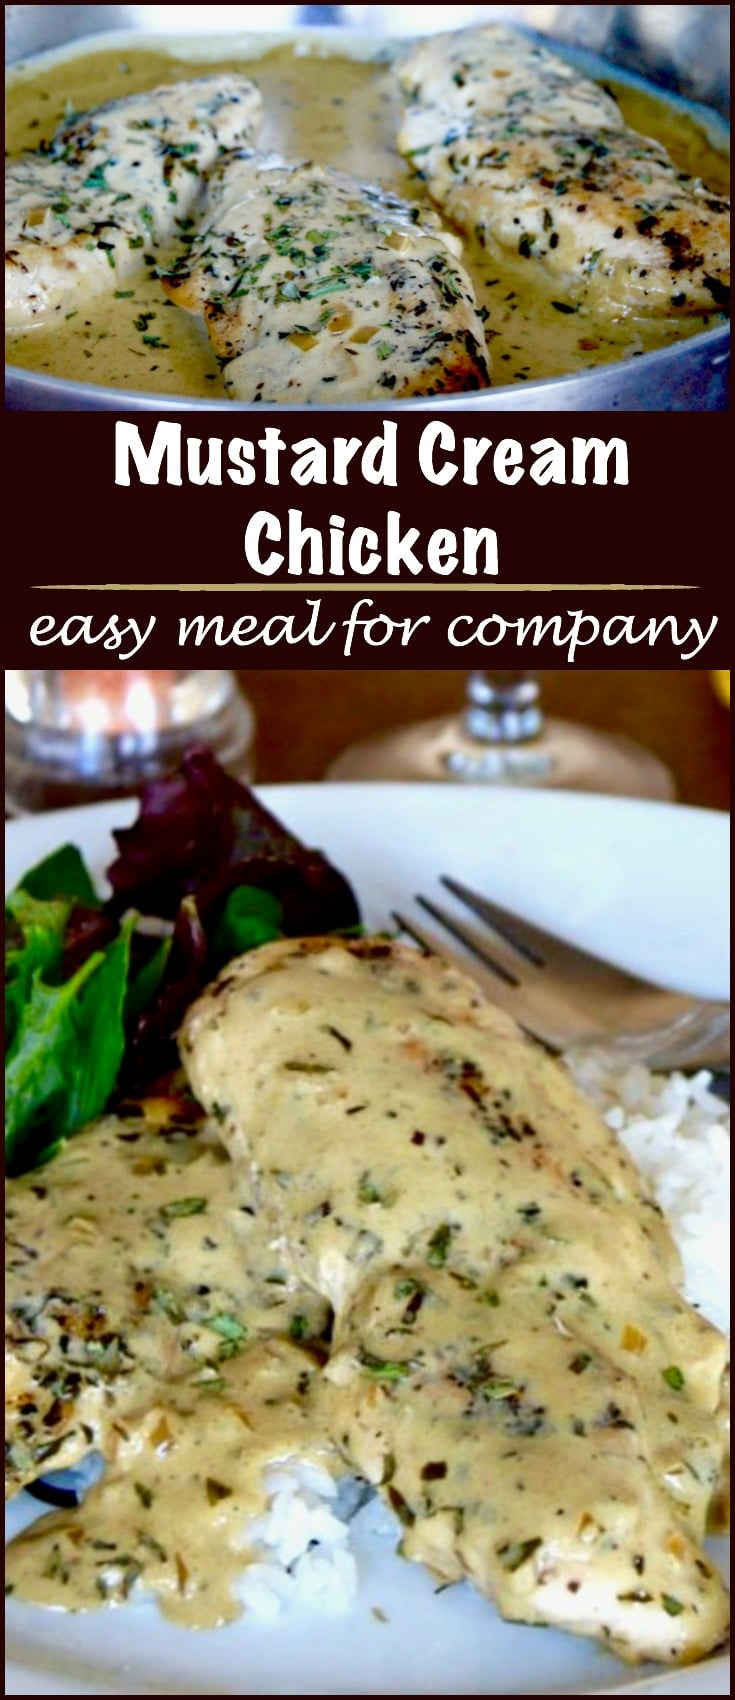 Mustard Cream Chicken Sauté: easy, quick & delicious. Creamy Light mustard sauce over tender juicy chicken makes a delicious comfort food meal for entertaining!